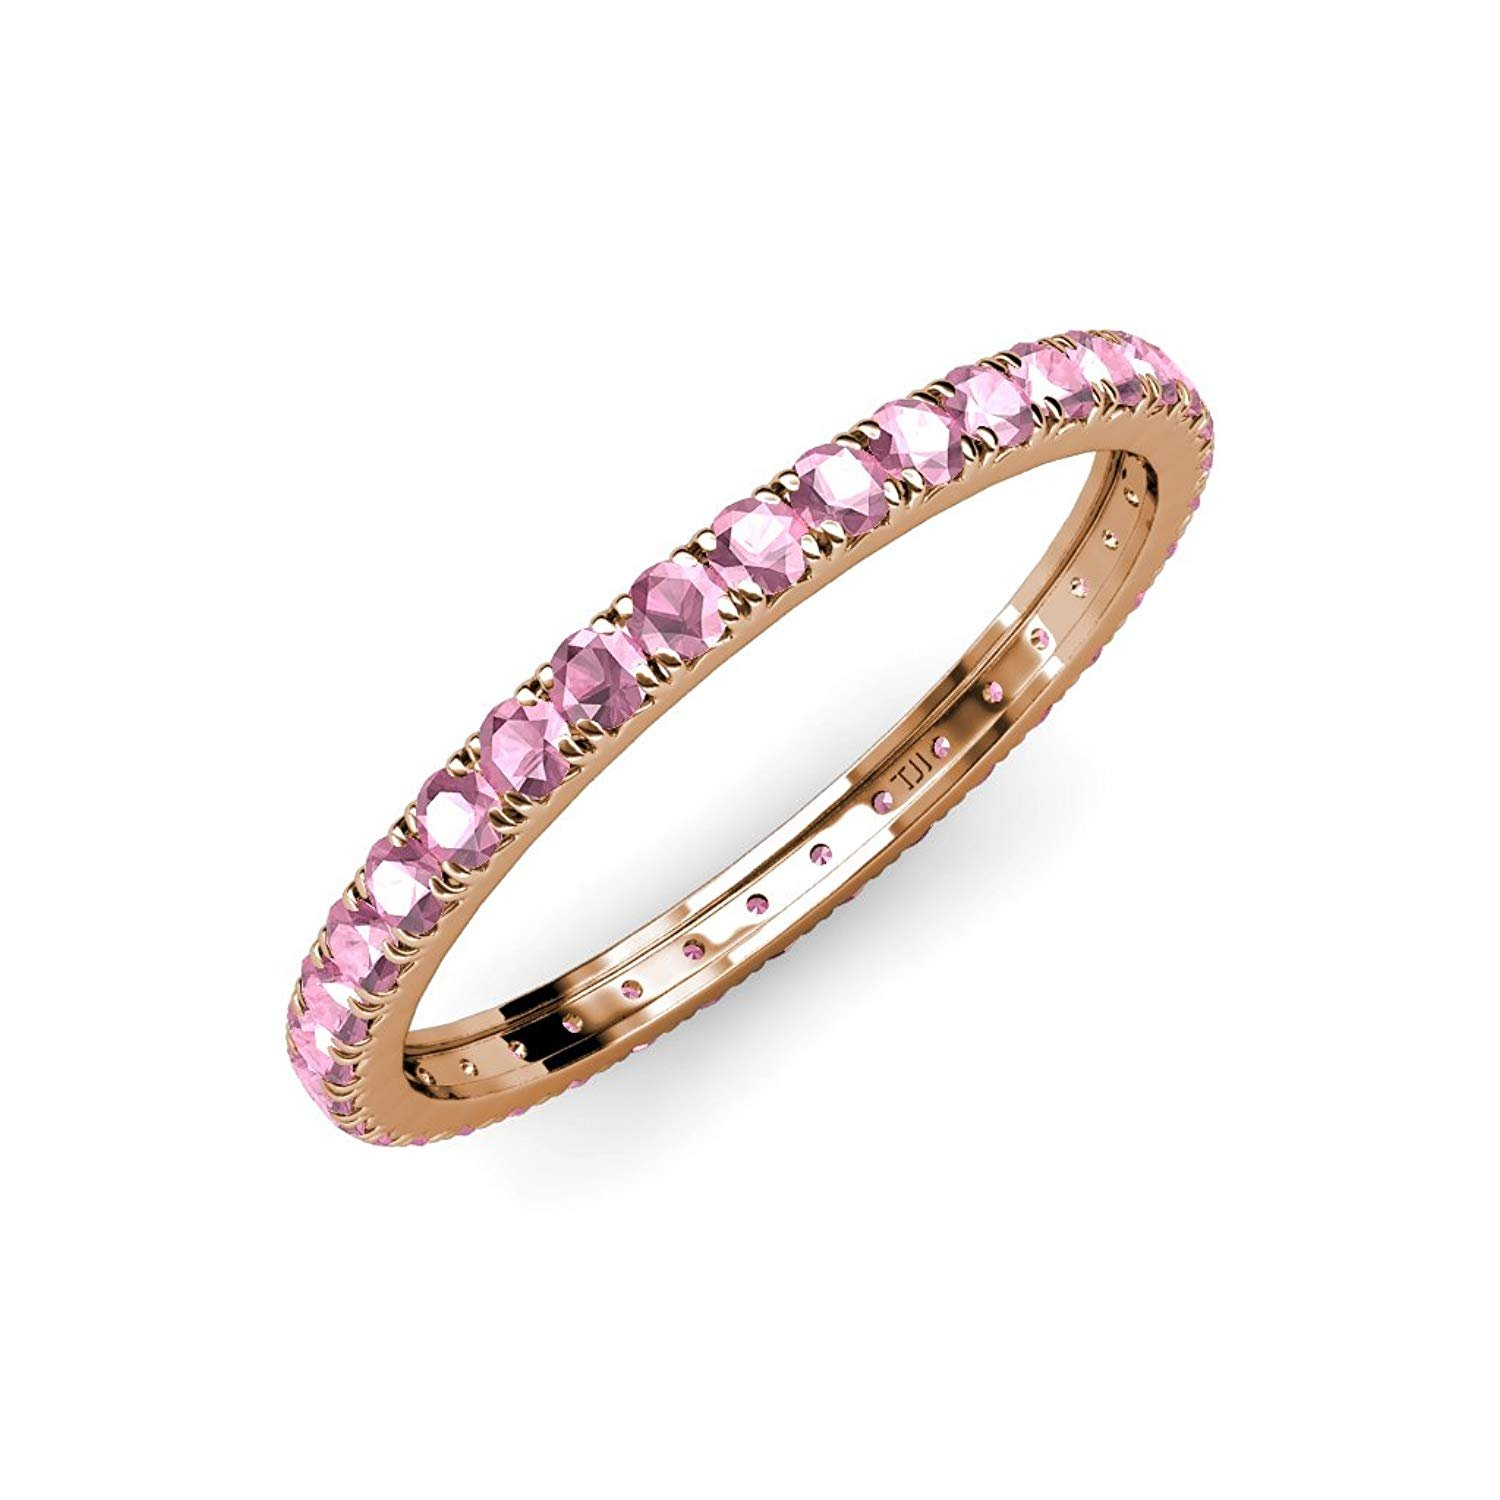 Pink Tourmaline French Set Eternity Band 0.86 ct tw to 1.03 ct tw in 18K Rose Gold.size 5.0 by TriJewels